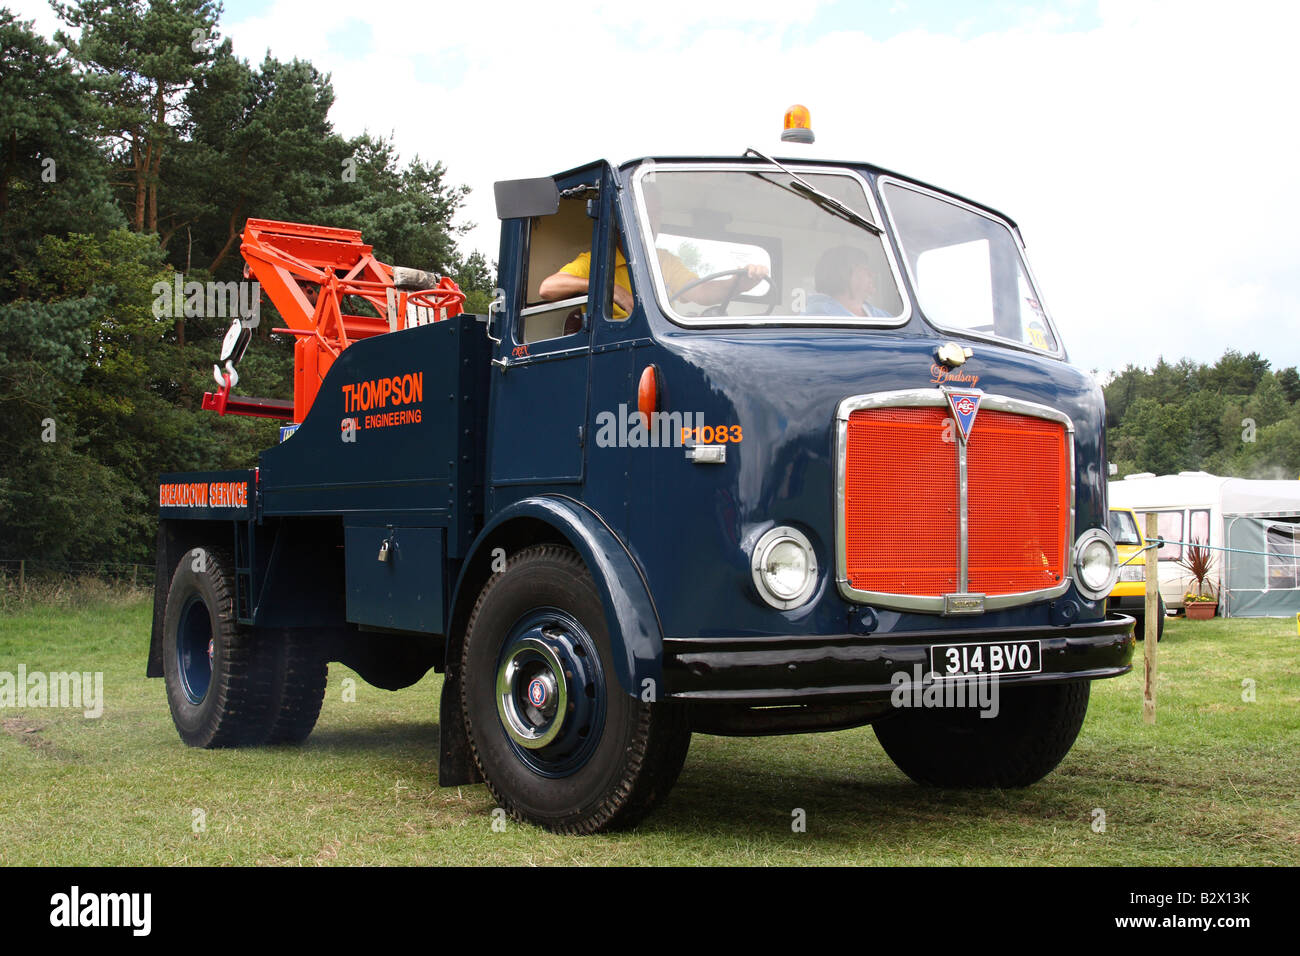 A vintage AEC tow truck at the Cromford Steam Engine Rally 2008. - Stock Image